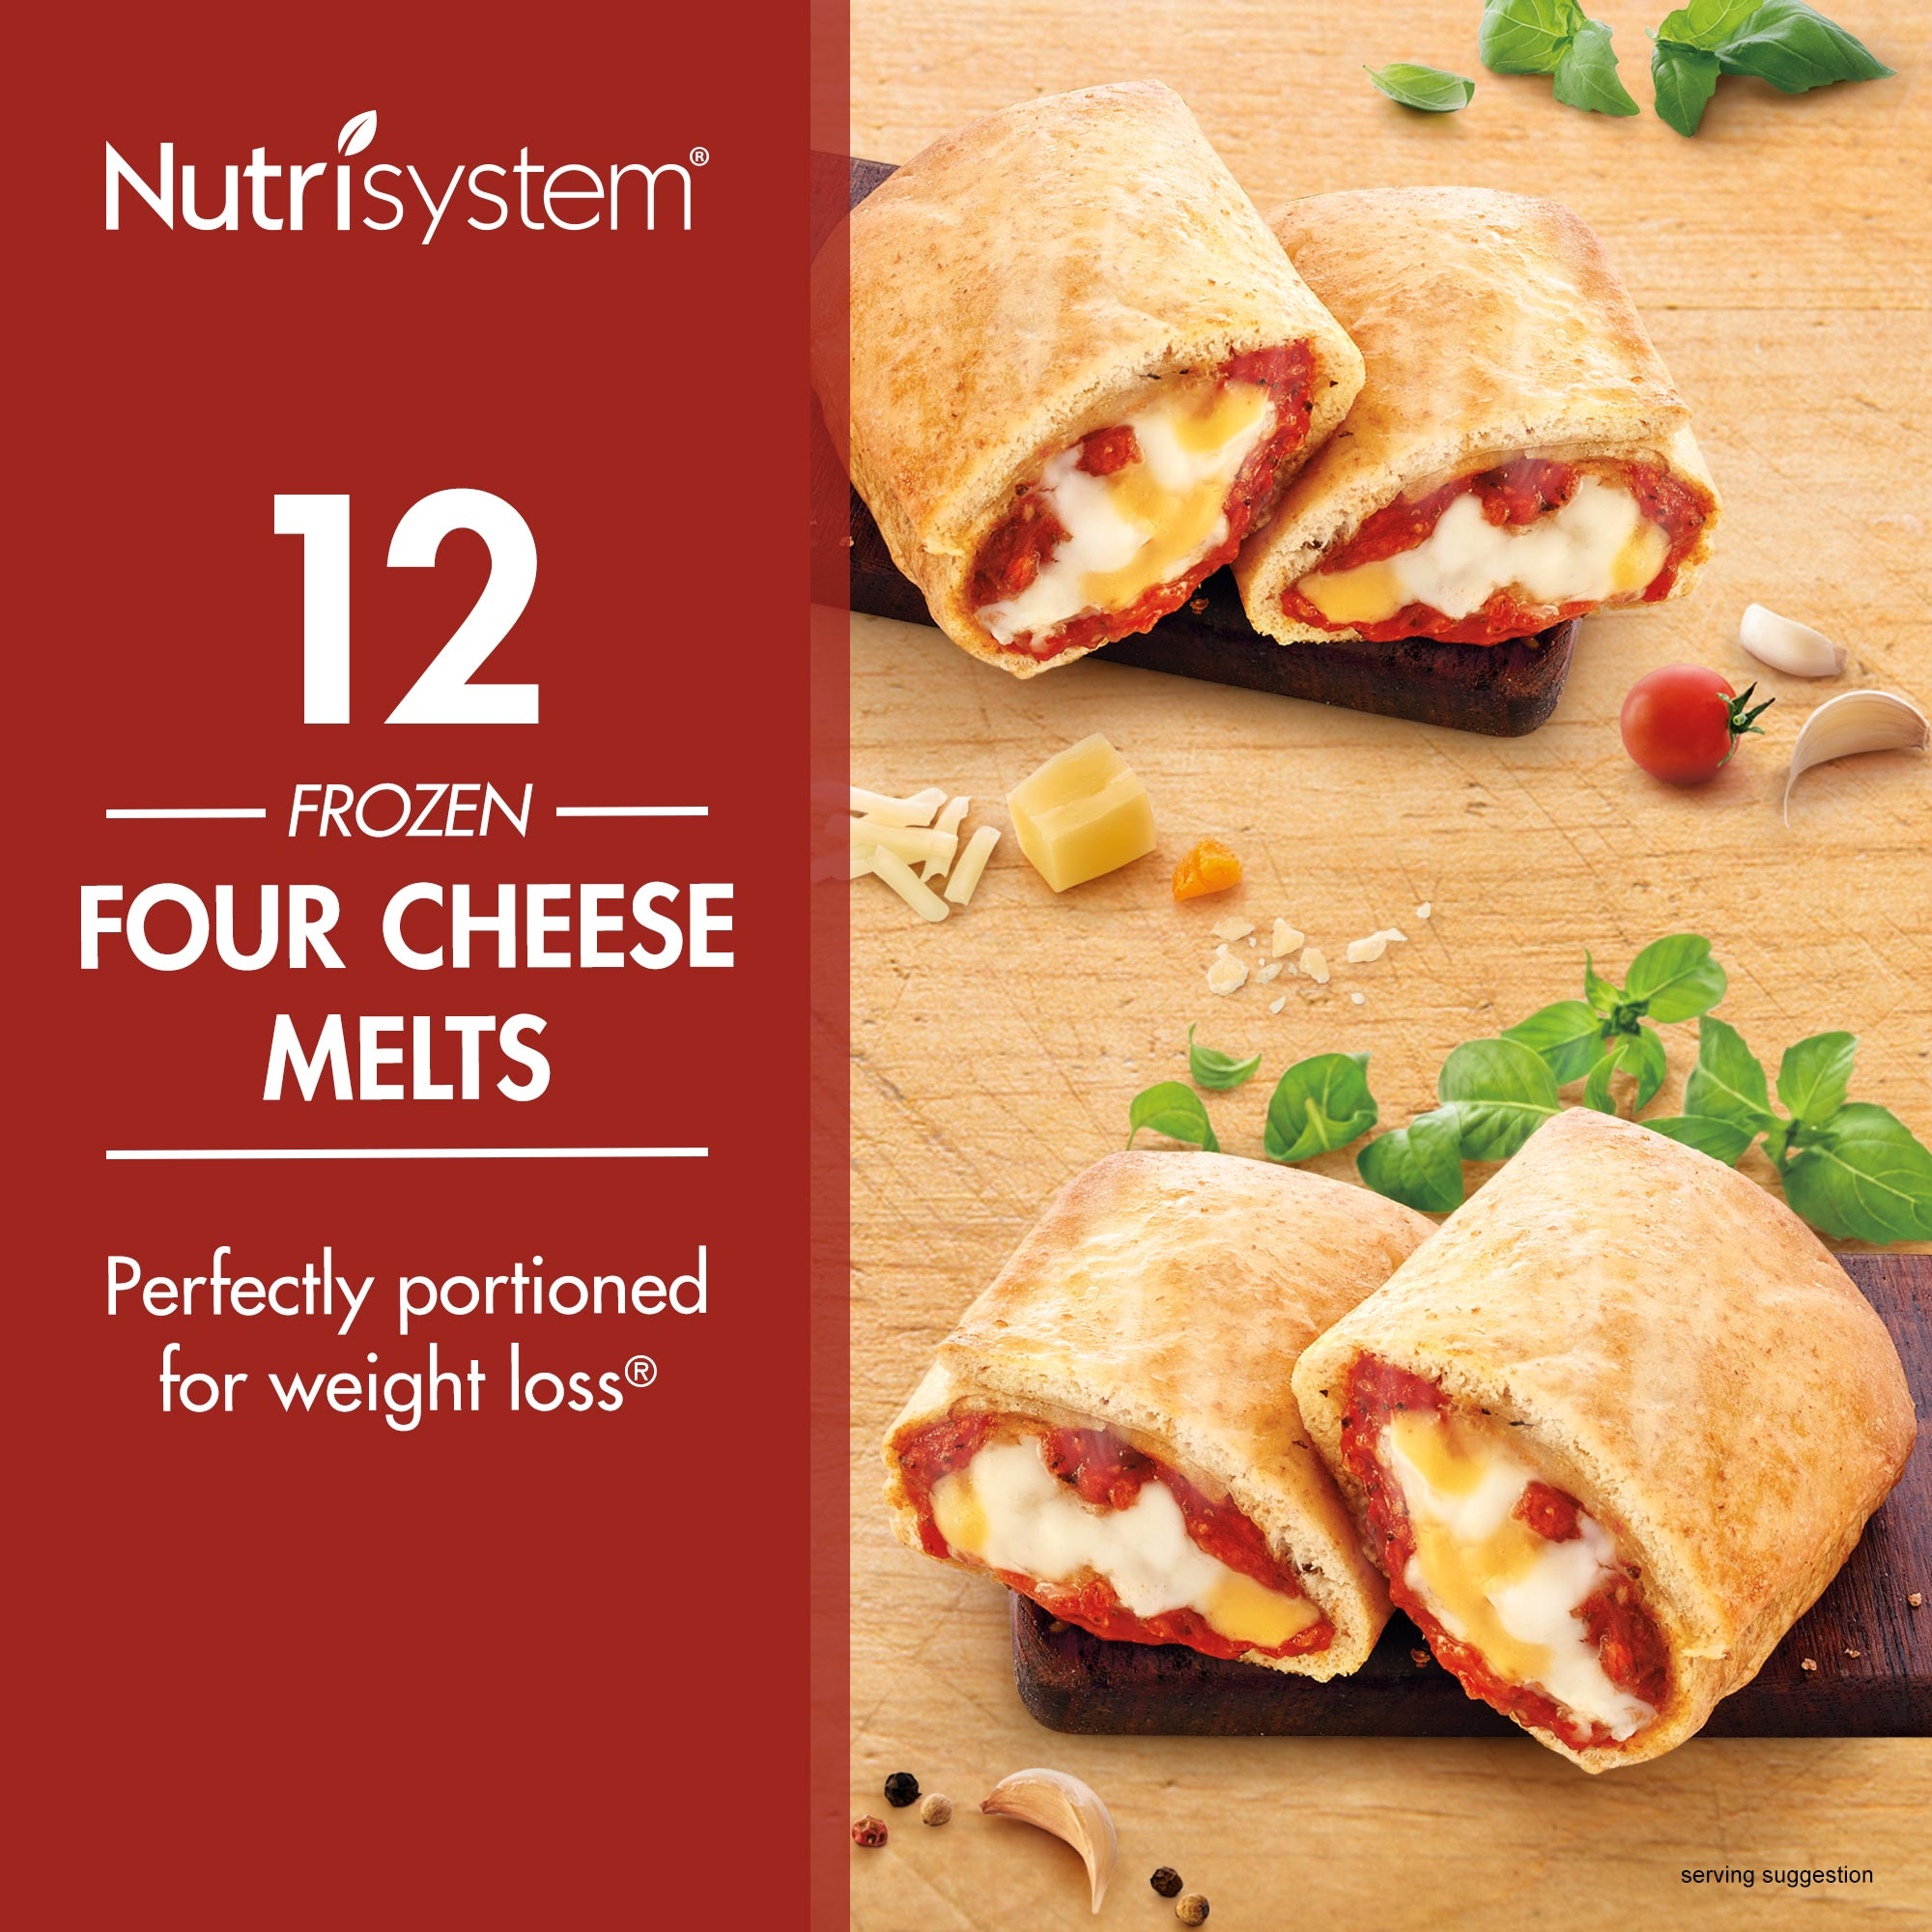 Nutrisystem Frozen Four Cheese Lunch Melt, 4.0 oz, 12 Ct